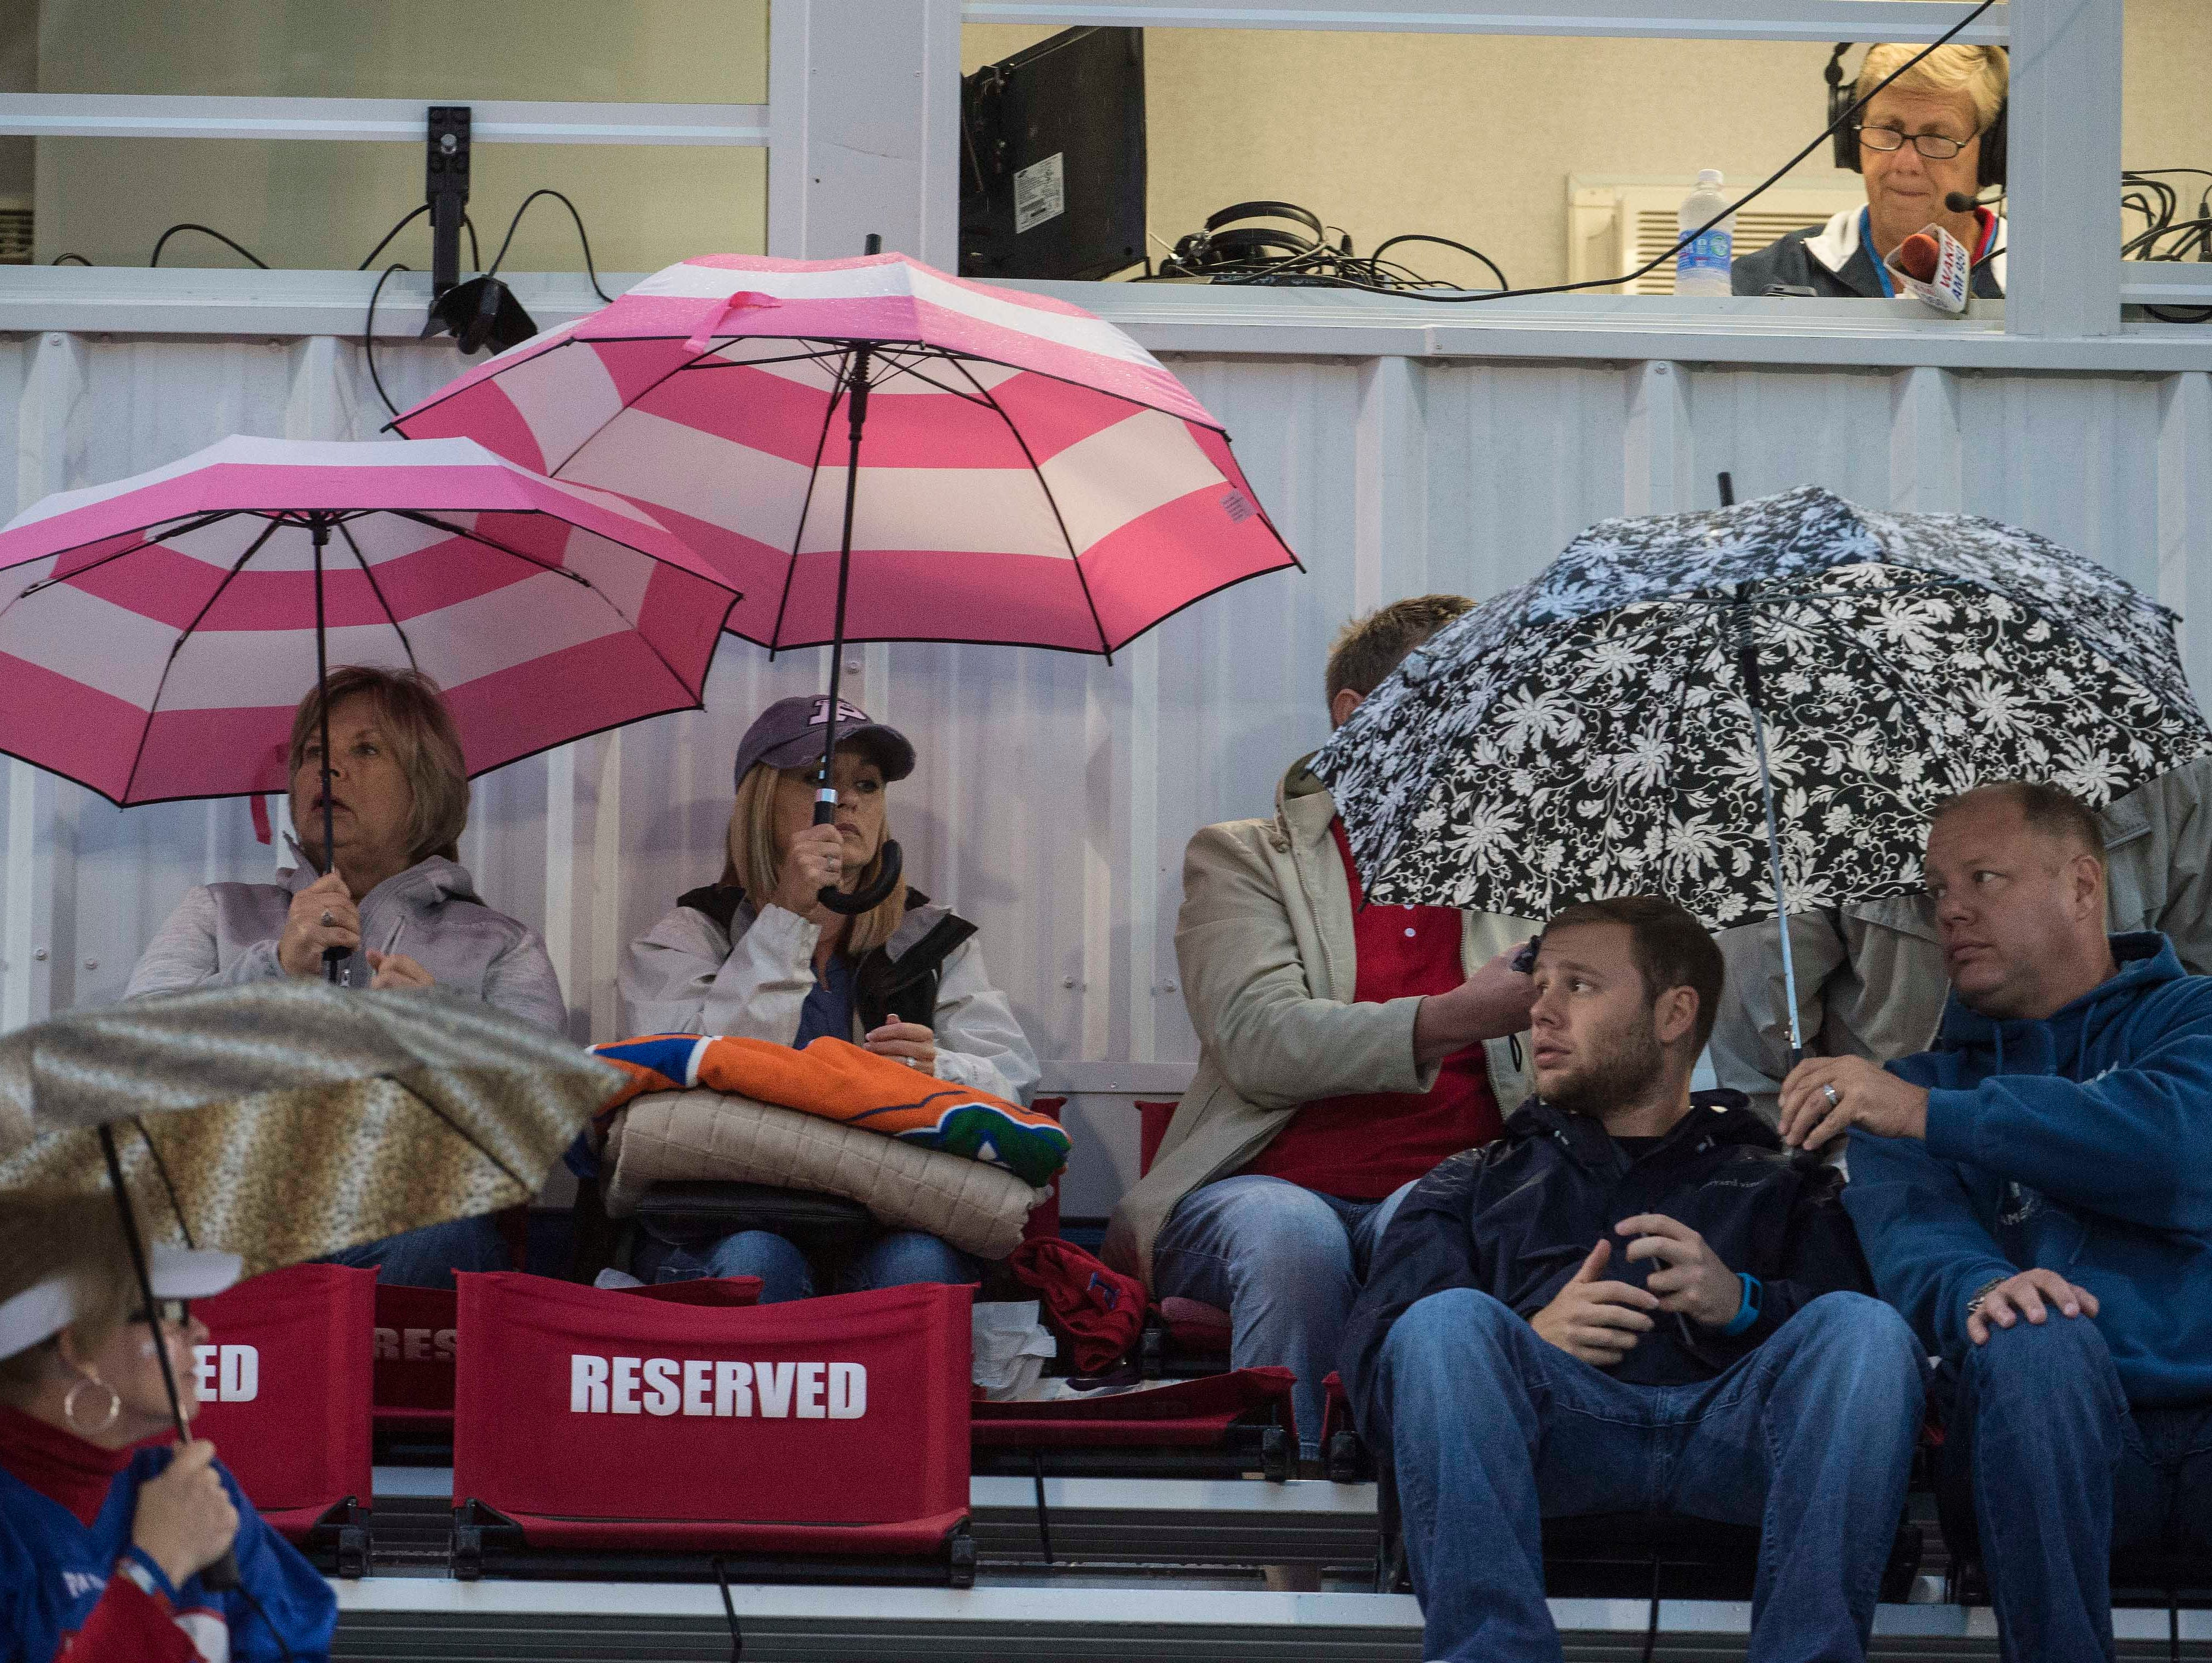 Page fans try to keep dey in the rain during the Page High School on Friday Sept. 25, 2015, in Franklin in Tenn.